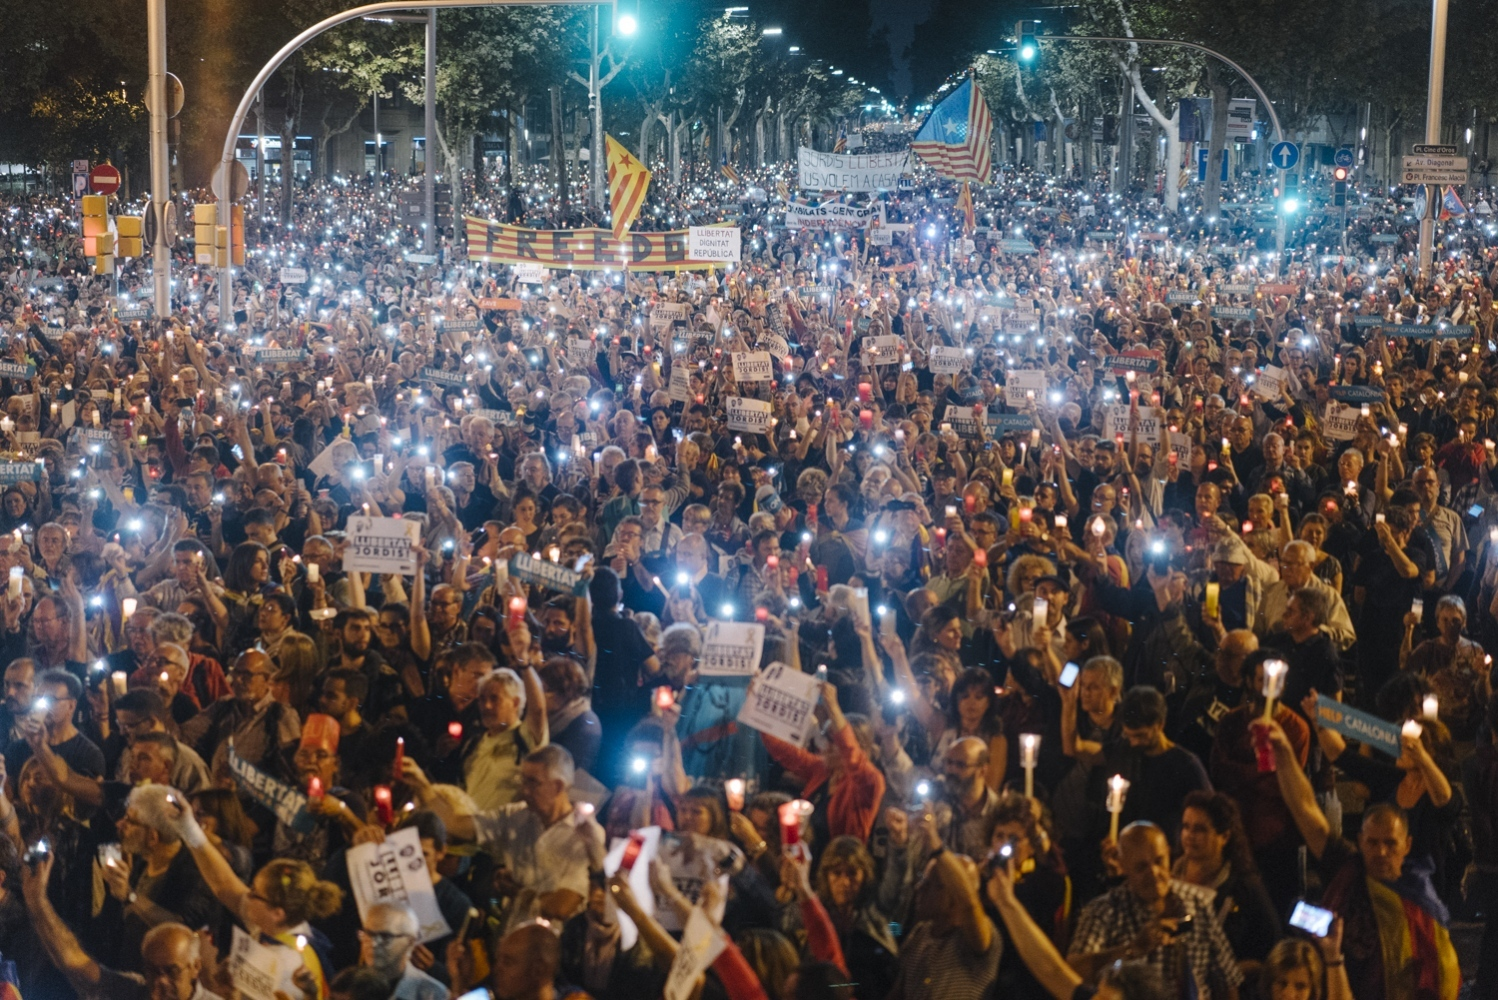 A massive crowd of over 200,000 people in Barcelona raise candles and phones during a 5 minute silence for Jordi&Jordi, the leaders of the largest civil societies in Catalunya who were imprisoned by a Spanish judge, October 17th, 2017. The leaders face charges of possible sedition for organizing protests in response to September 20th when the Spanish Guardia Civil arrested Catalan officials in various government offices in an attempt to foil the October 1st referendum.